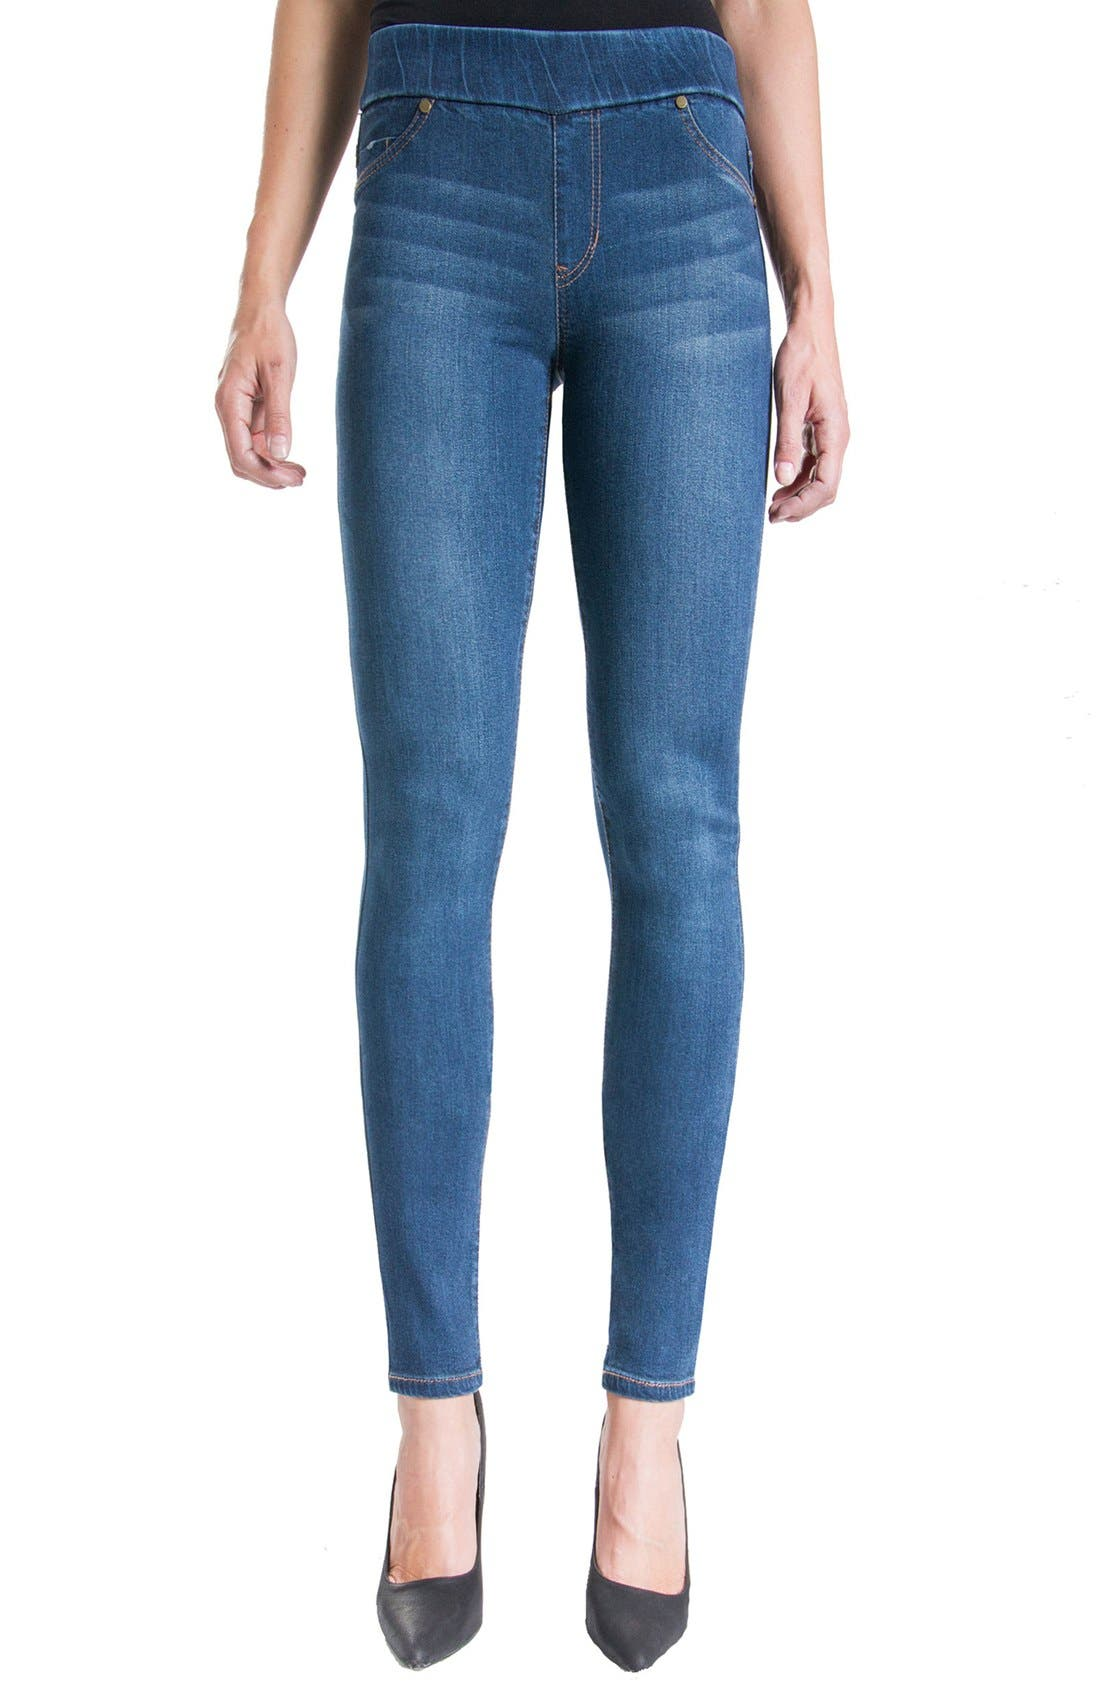 Liverpool Jeans Company Sienna Mid Rise Soft Stretch Denim Leggings (Petrol)